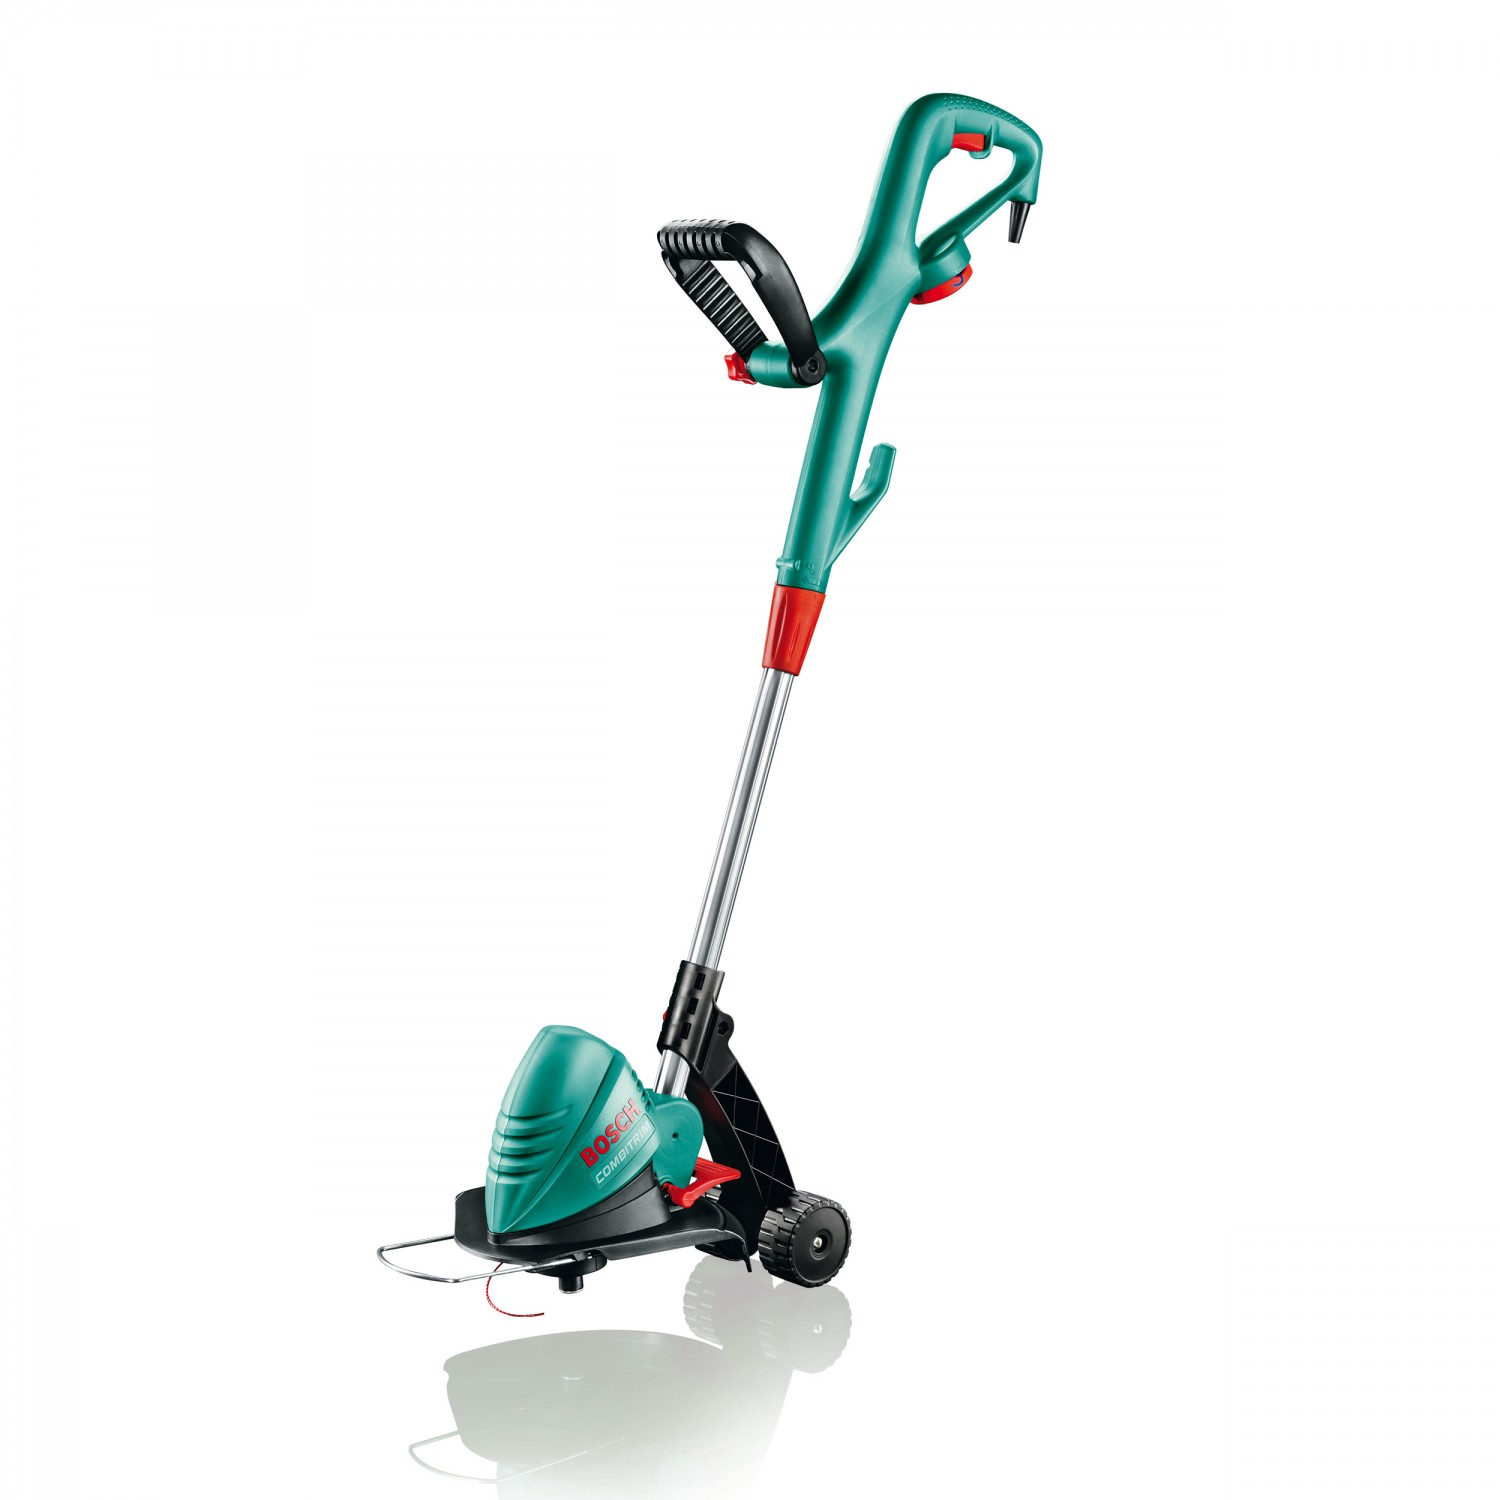 Trimmer electric Bosch Art 30 Combitrim, 500 W